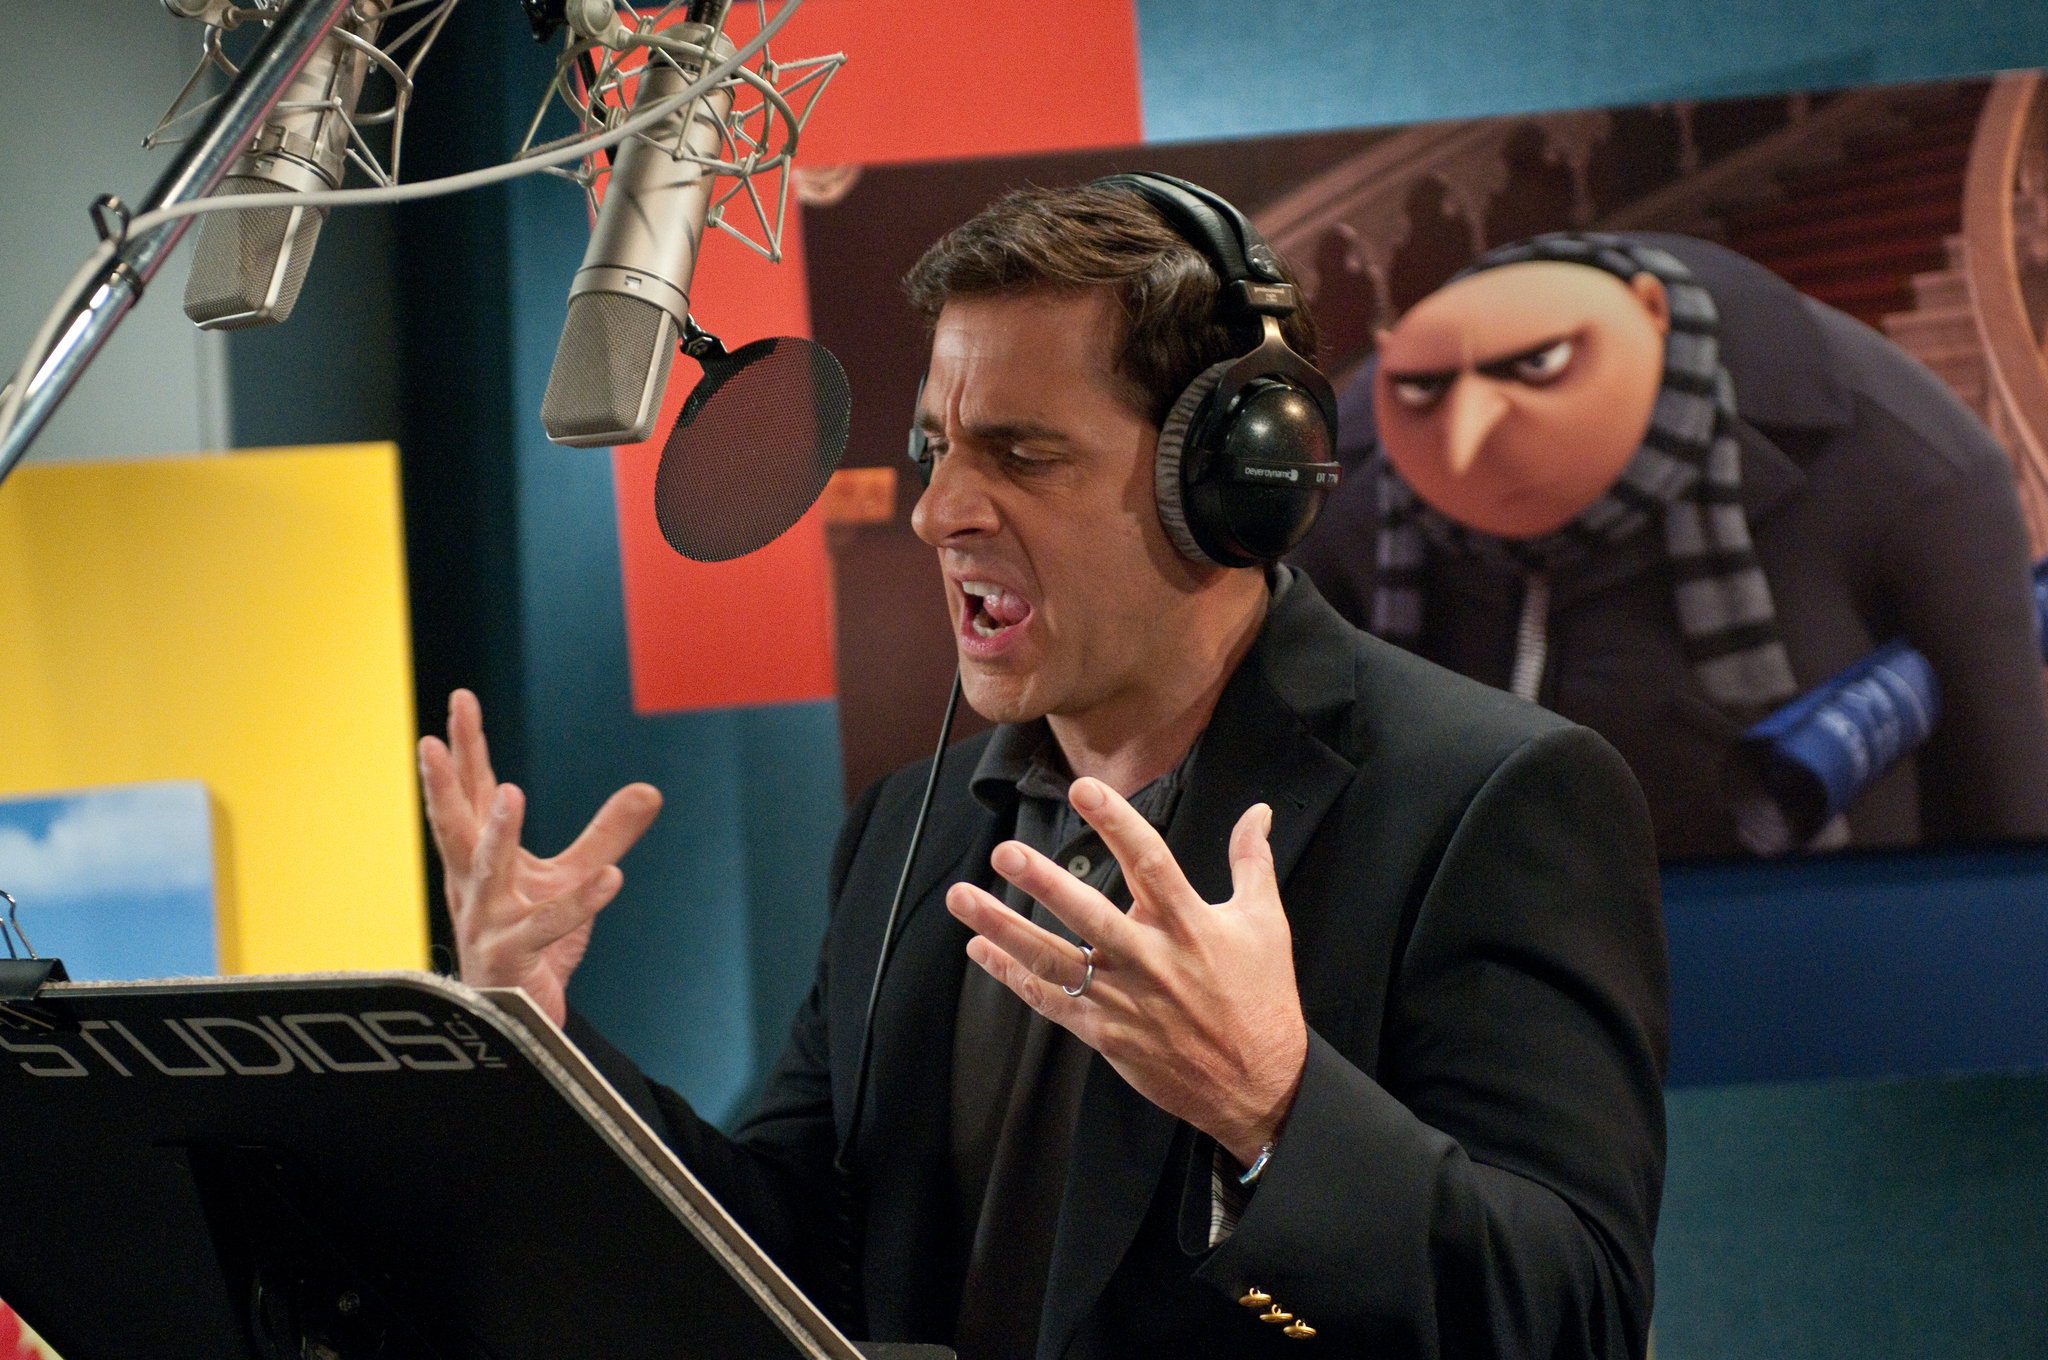 Steve Carell in Despicable Me (2010)